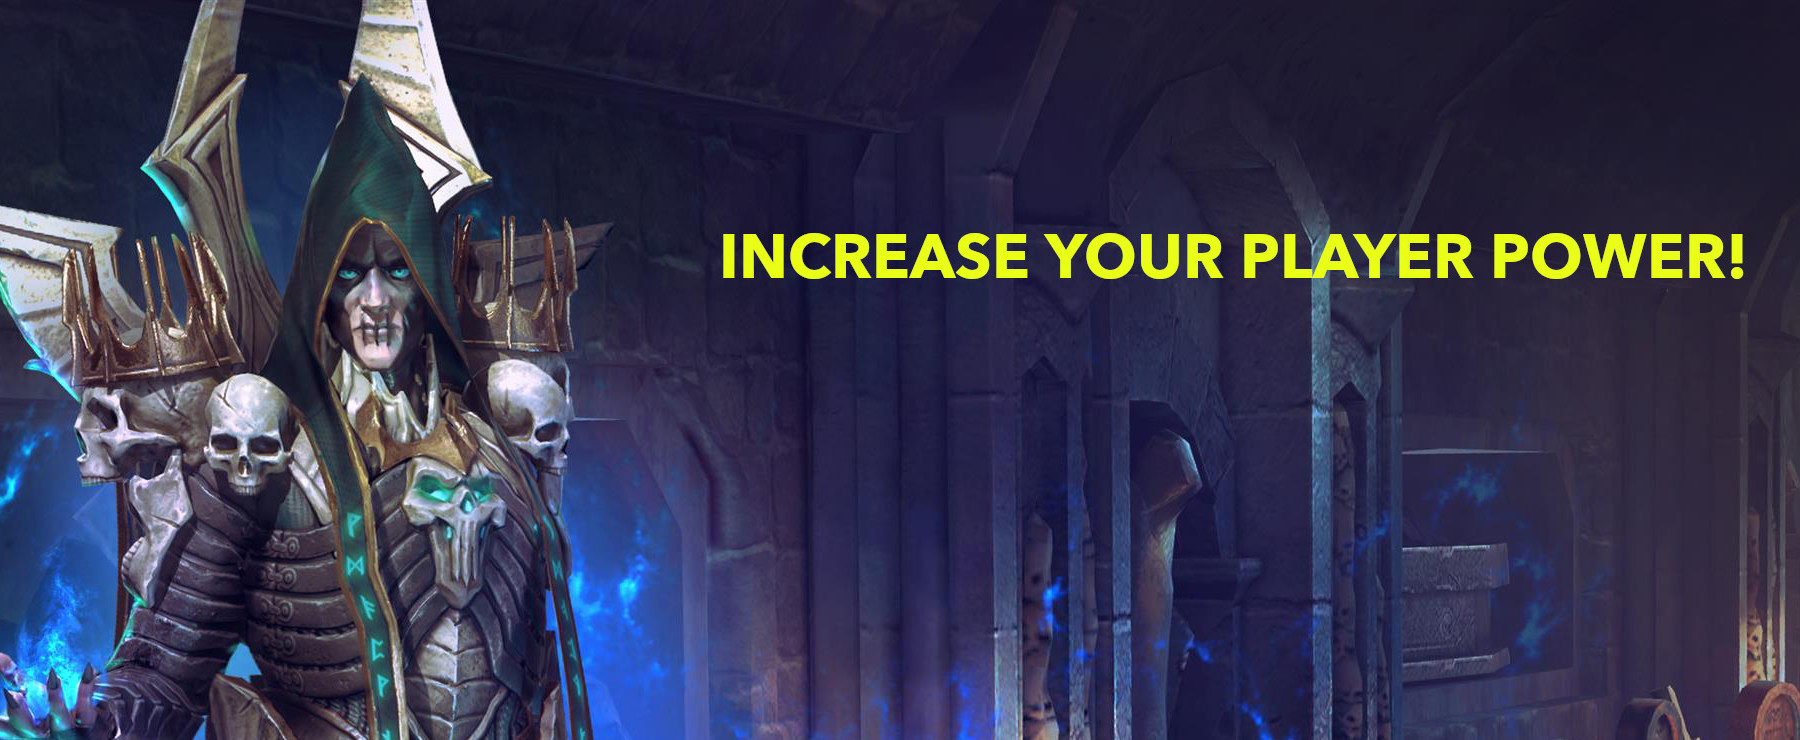 Increasing your Player Power